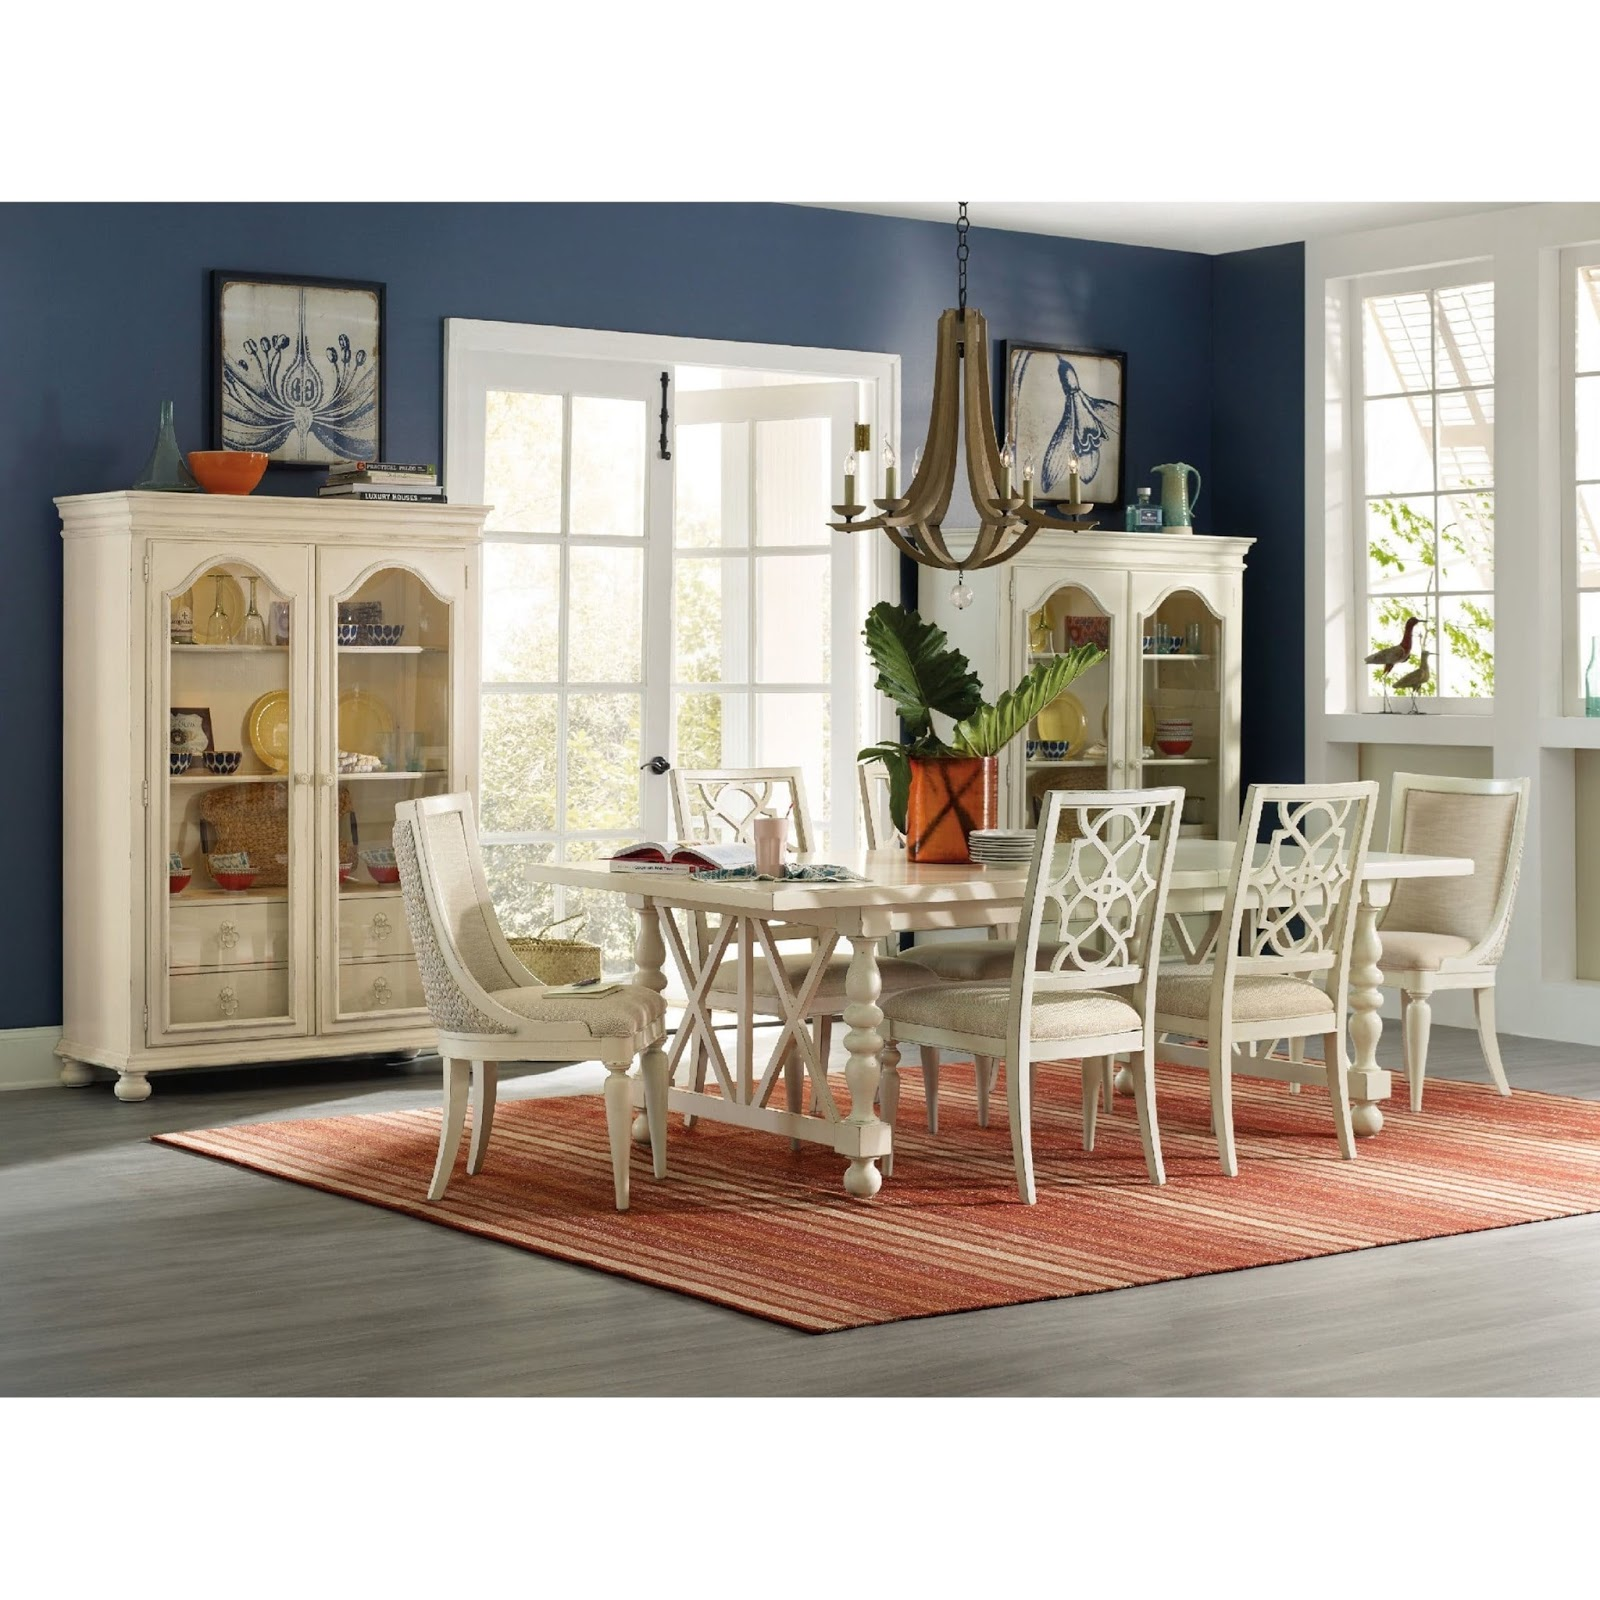 Baers Furniture Whimsical Dining Room